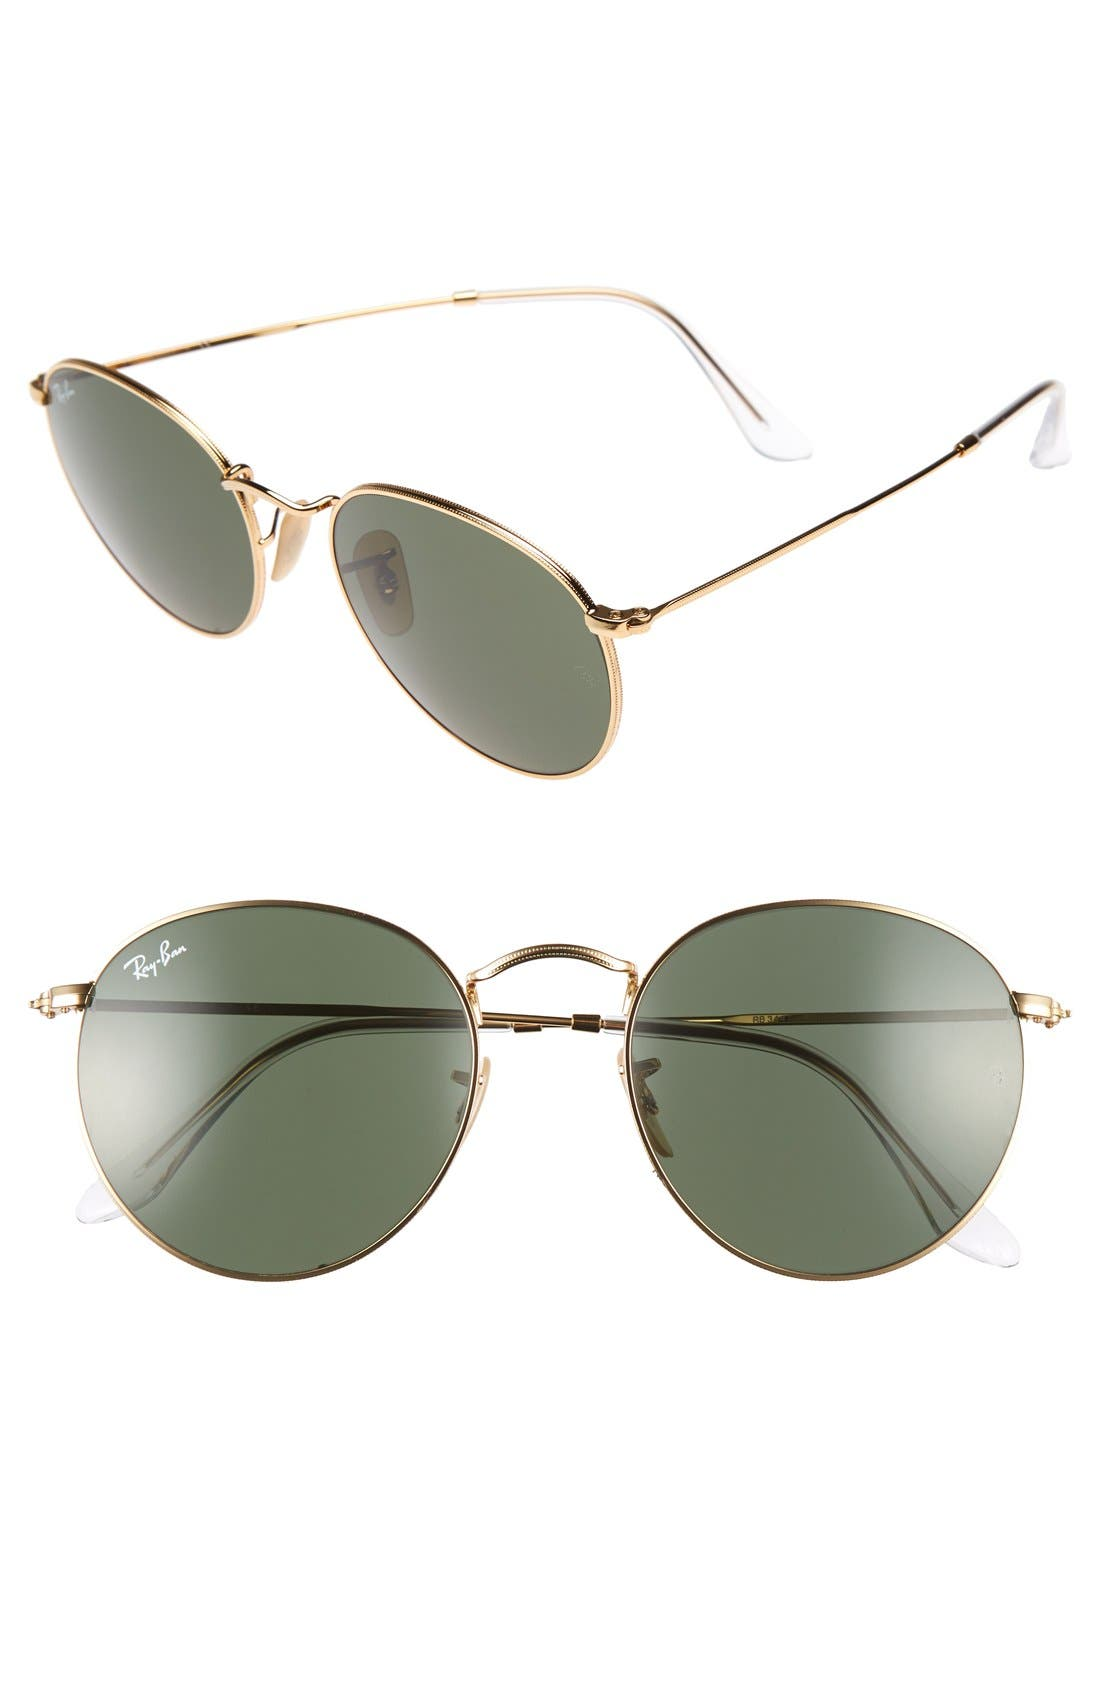 Icons 53mm Retro Sunglasses,                             Main thumbnail 1, color,                             GOLD/ GREEN